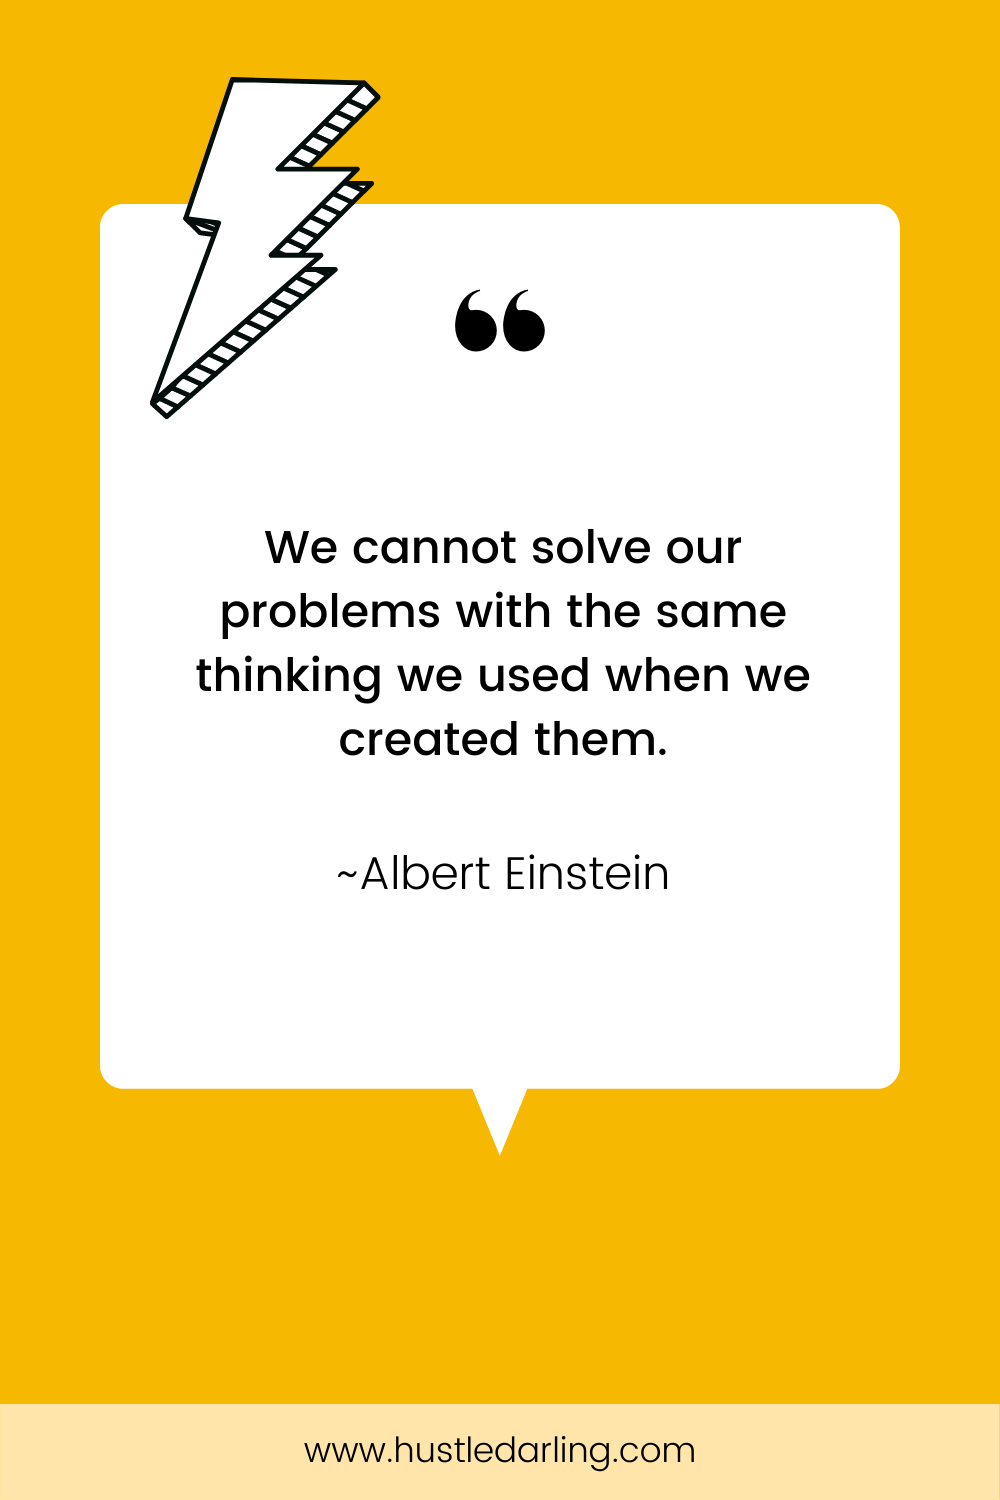 """A black and white striped lightning bolt is in the top left corner of the image. On a bright yellow background is a white speech bubble with a large quotation mark at the top. Text underneath reads """"We cannot solve our problems with the same thinking we use when we created them. ~ Albert Einstein"""""""